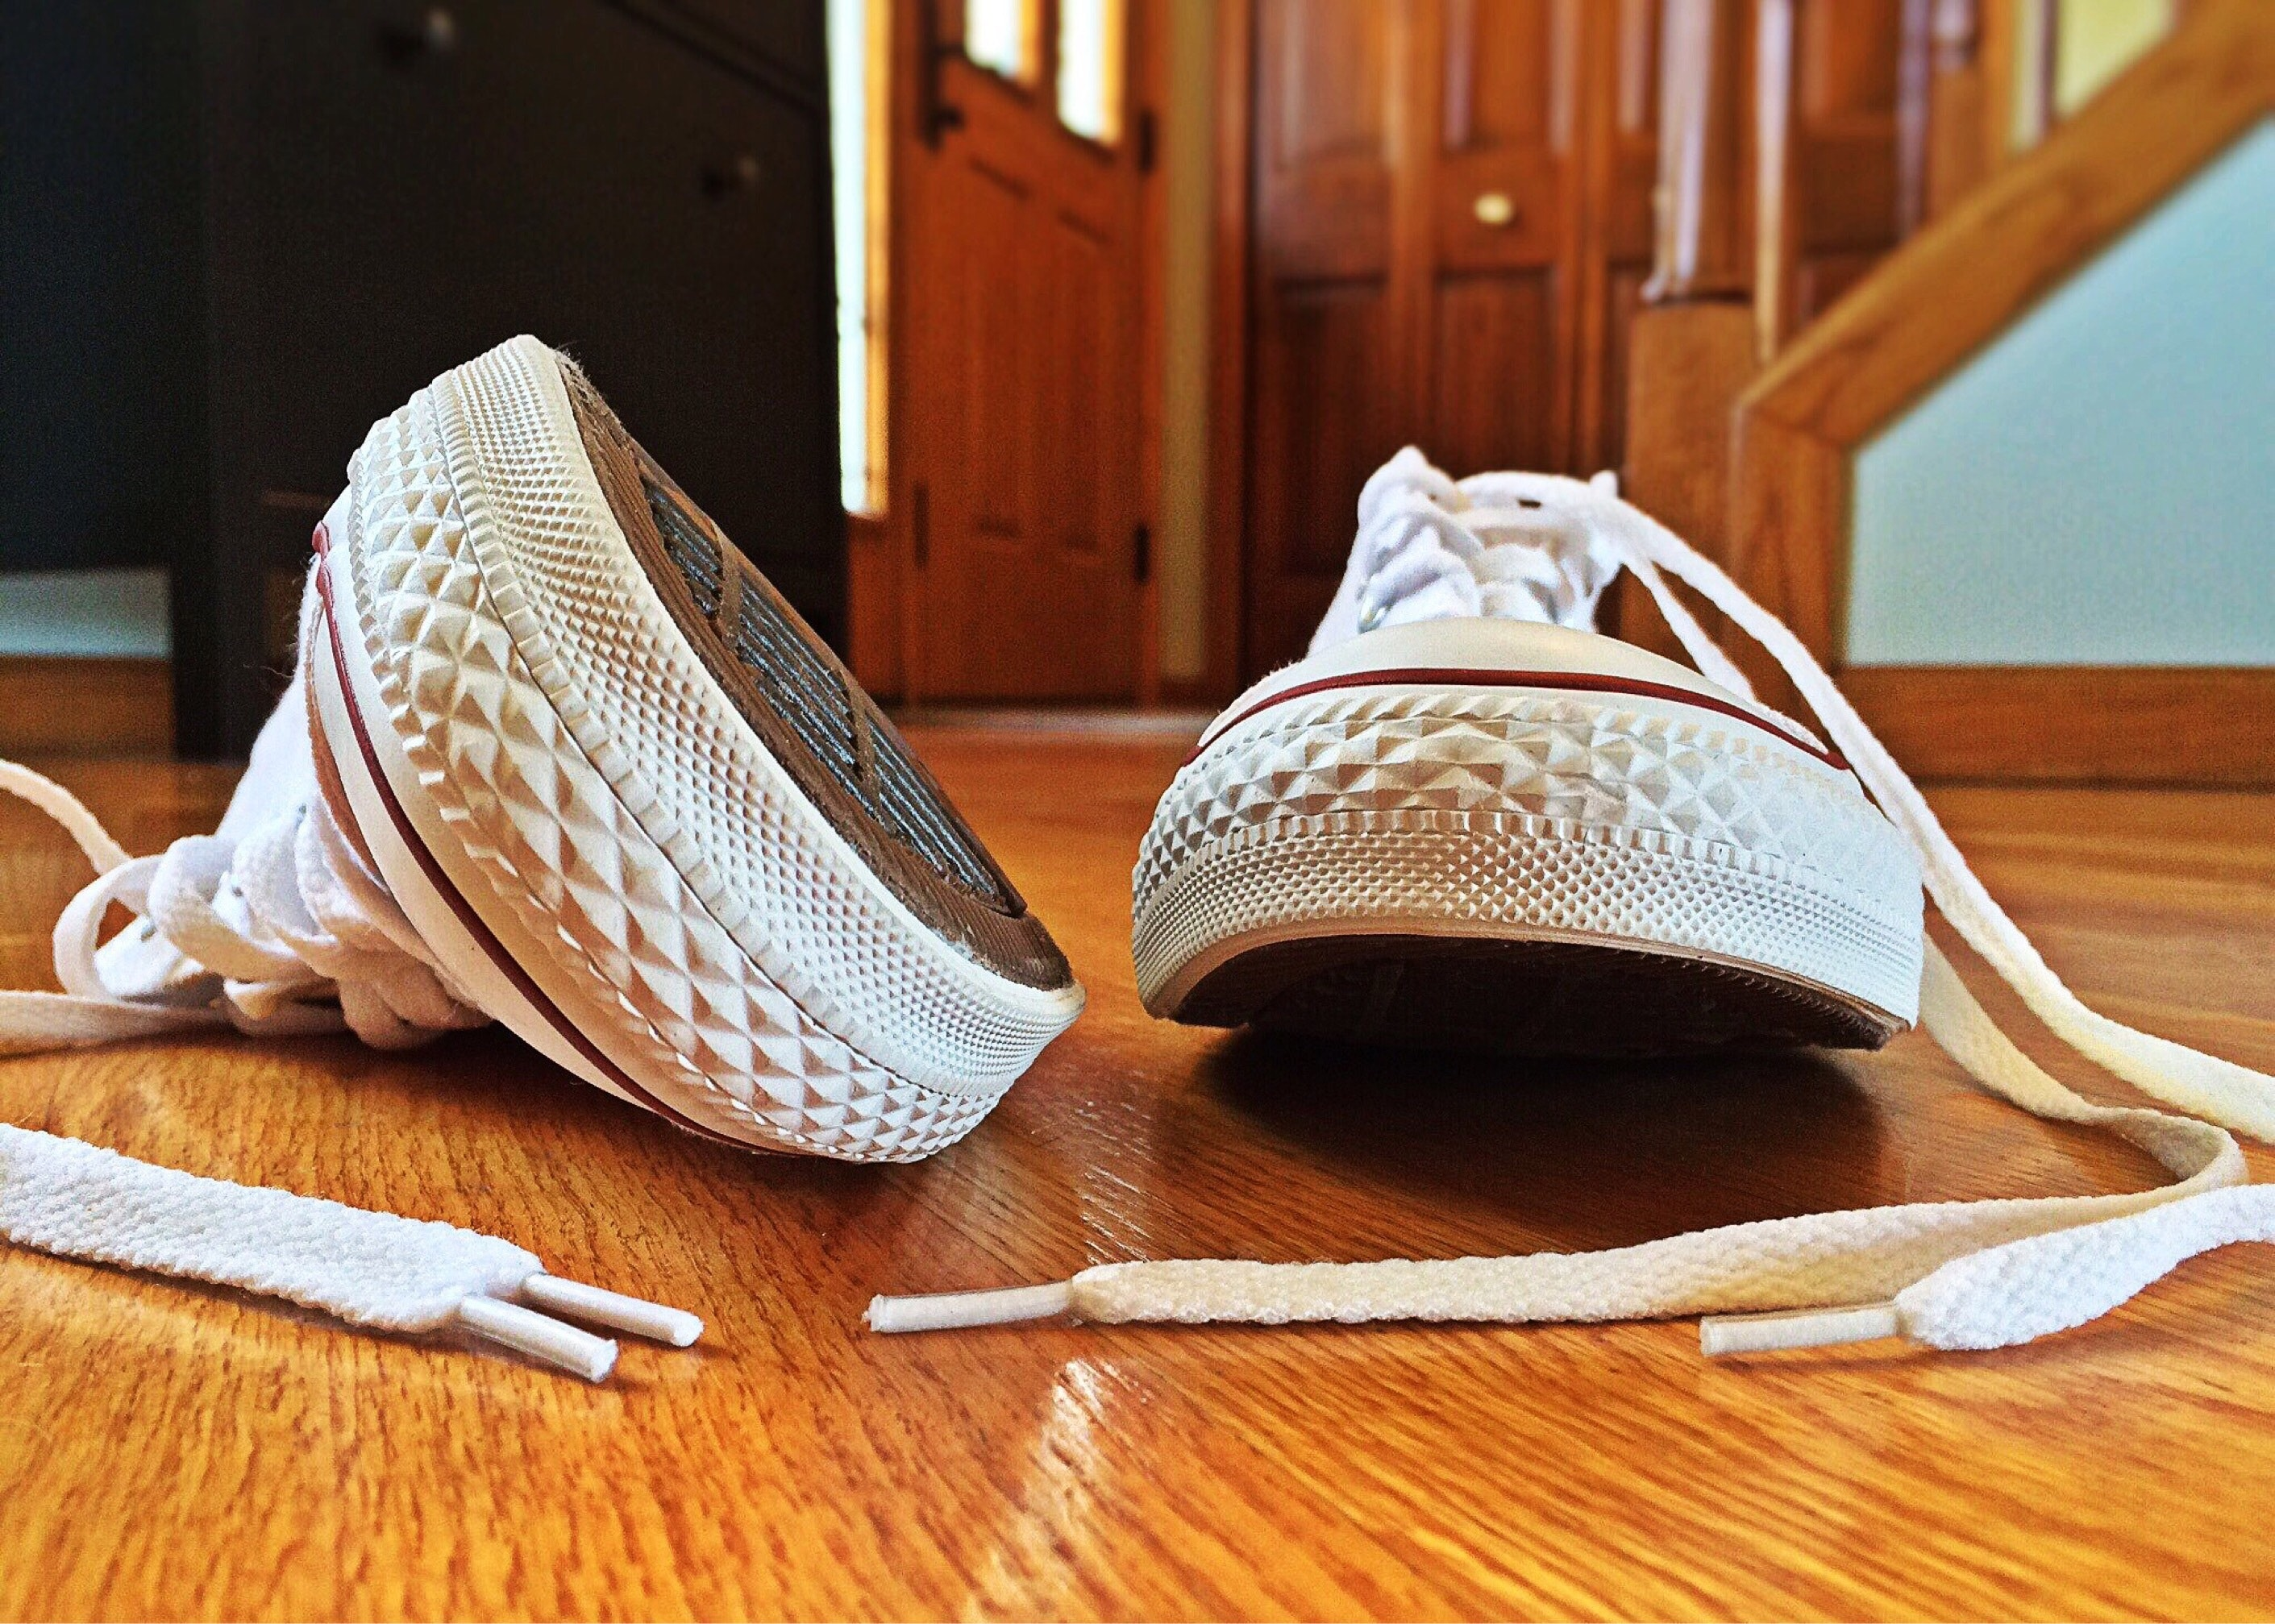 Person Showing Its Feet Wearing White Sneakers 183 Free